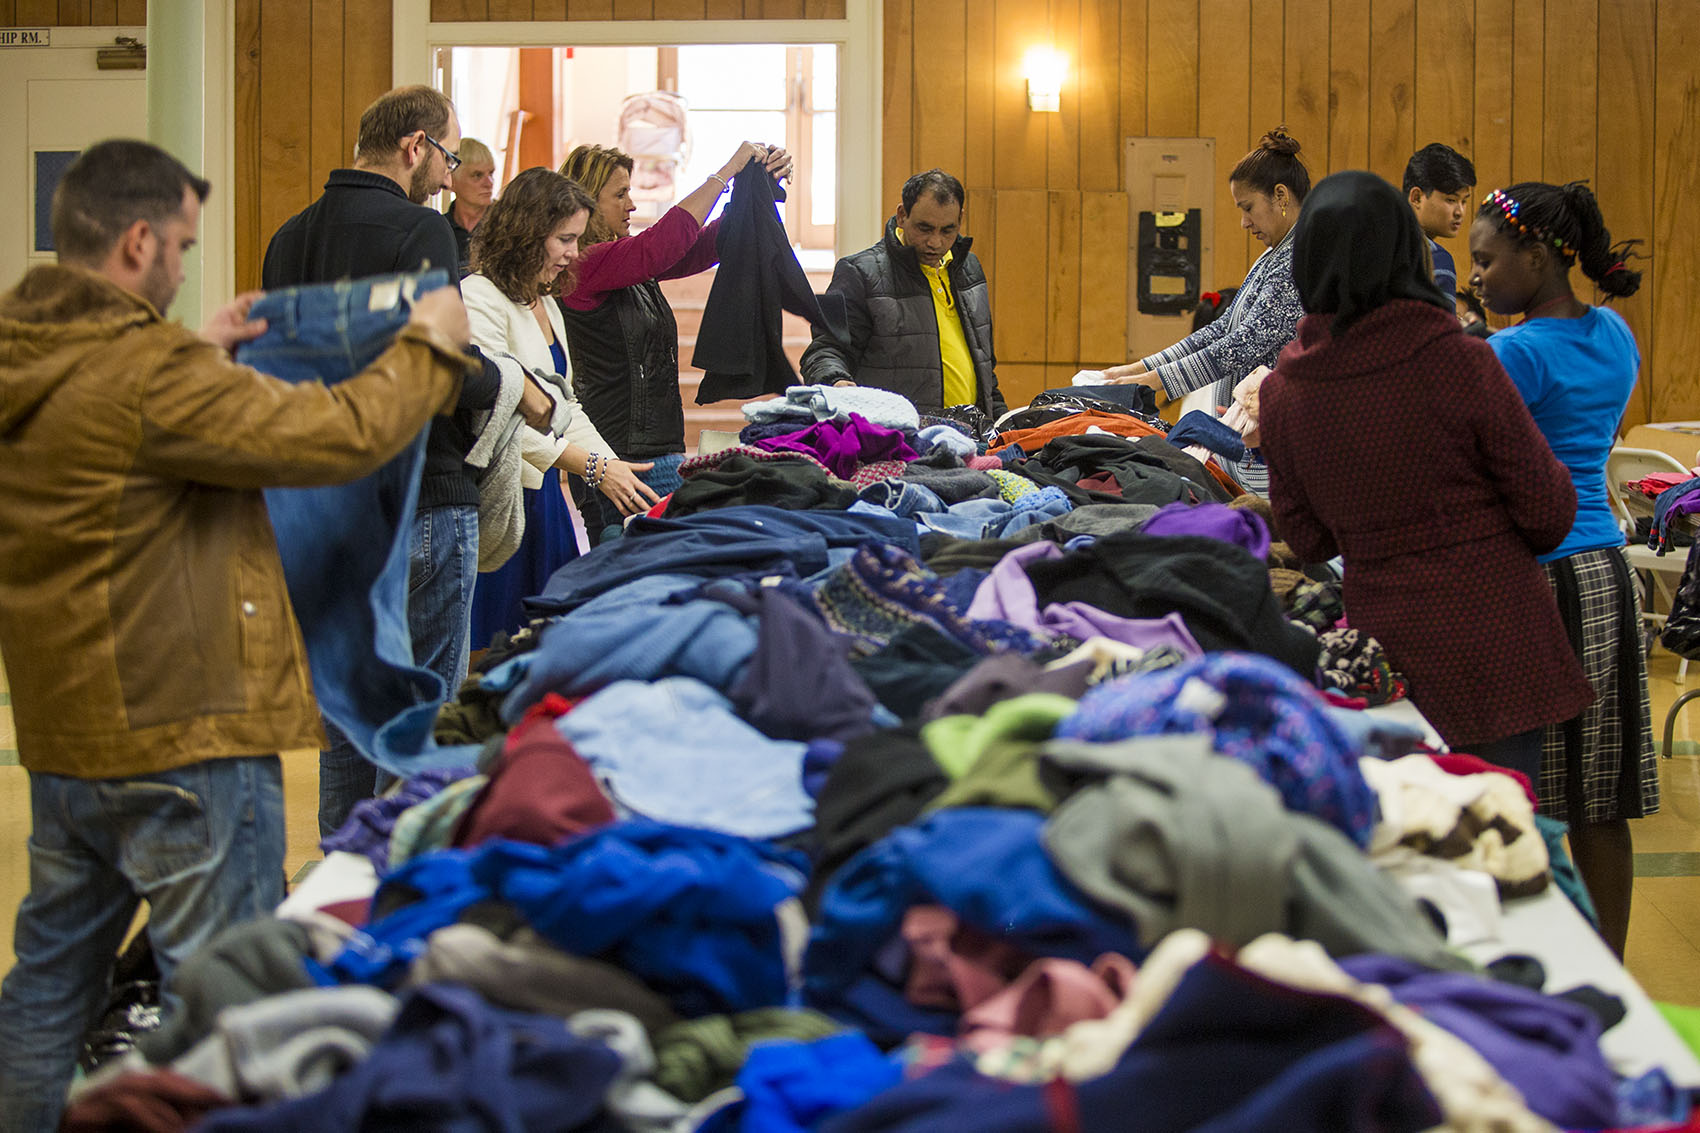 Refugees pick out items at a clothing drive at First United Baptist Church in Lowell. (Jesse Costa/WBUR)